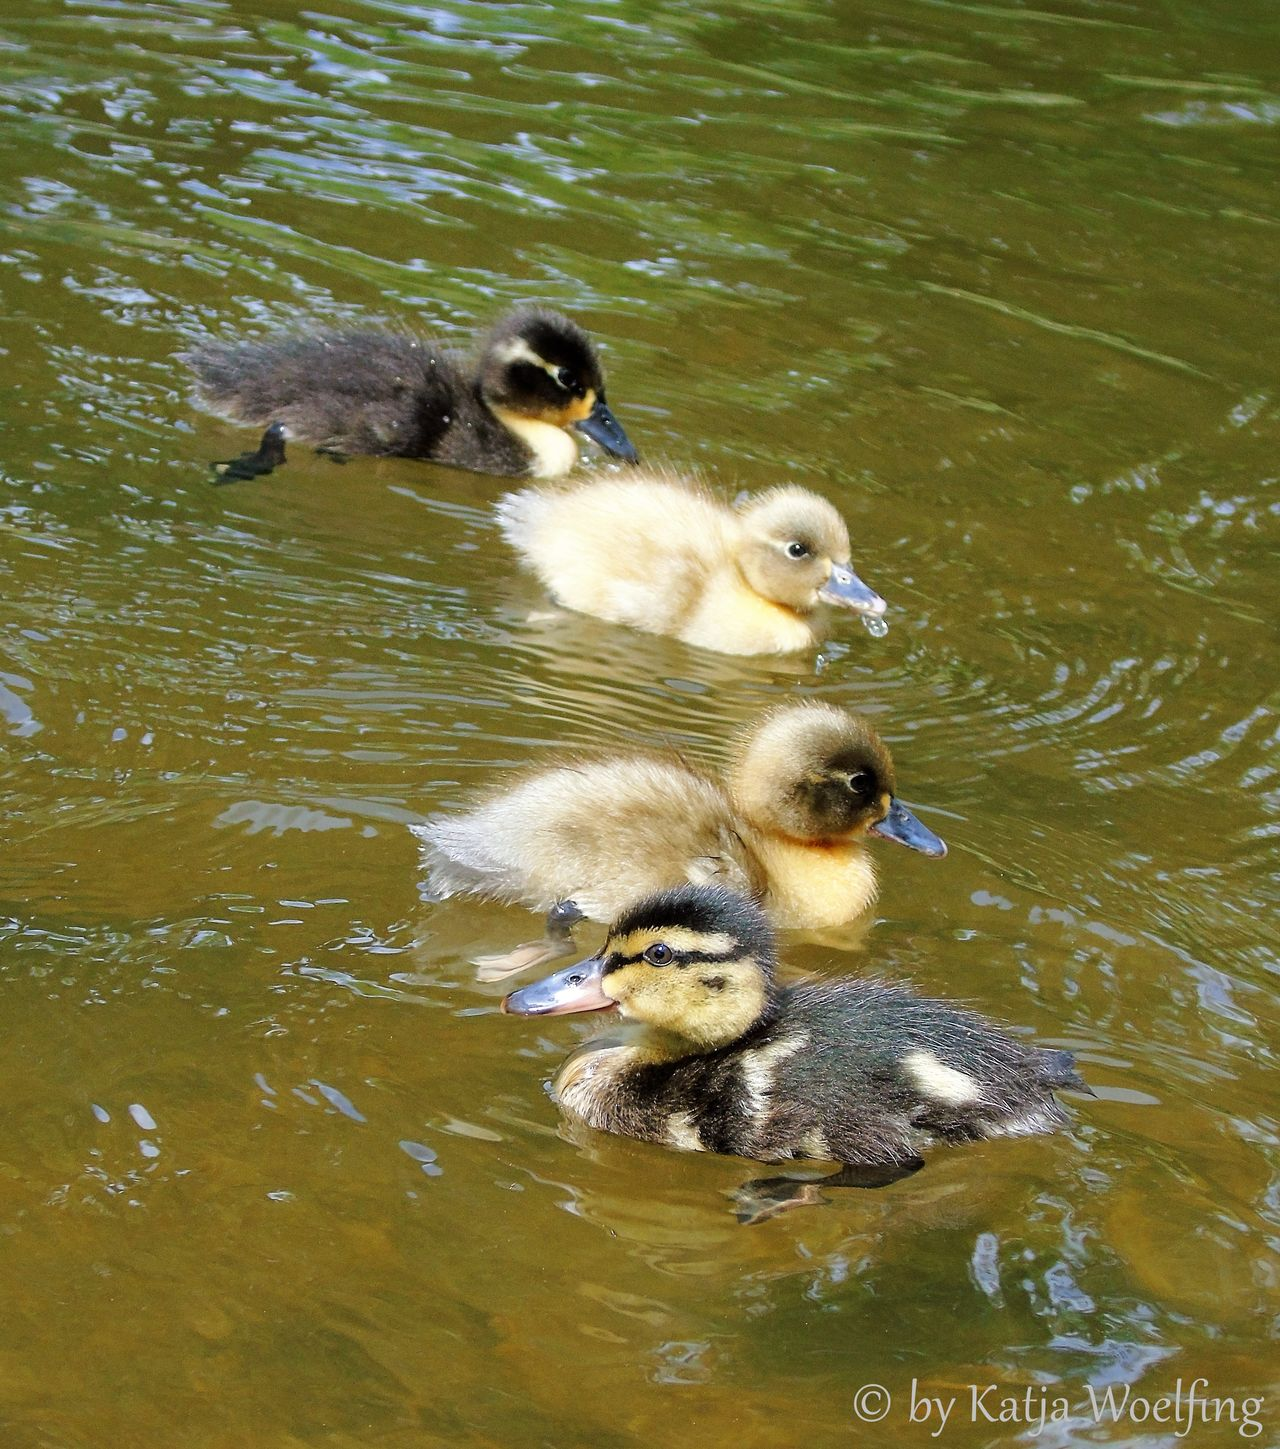 Am Köbogen Animal Themes Duckling Lake No People Outdoors So Sweet But Not To Eat Water Water Bird Young Animal